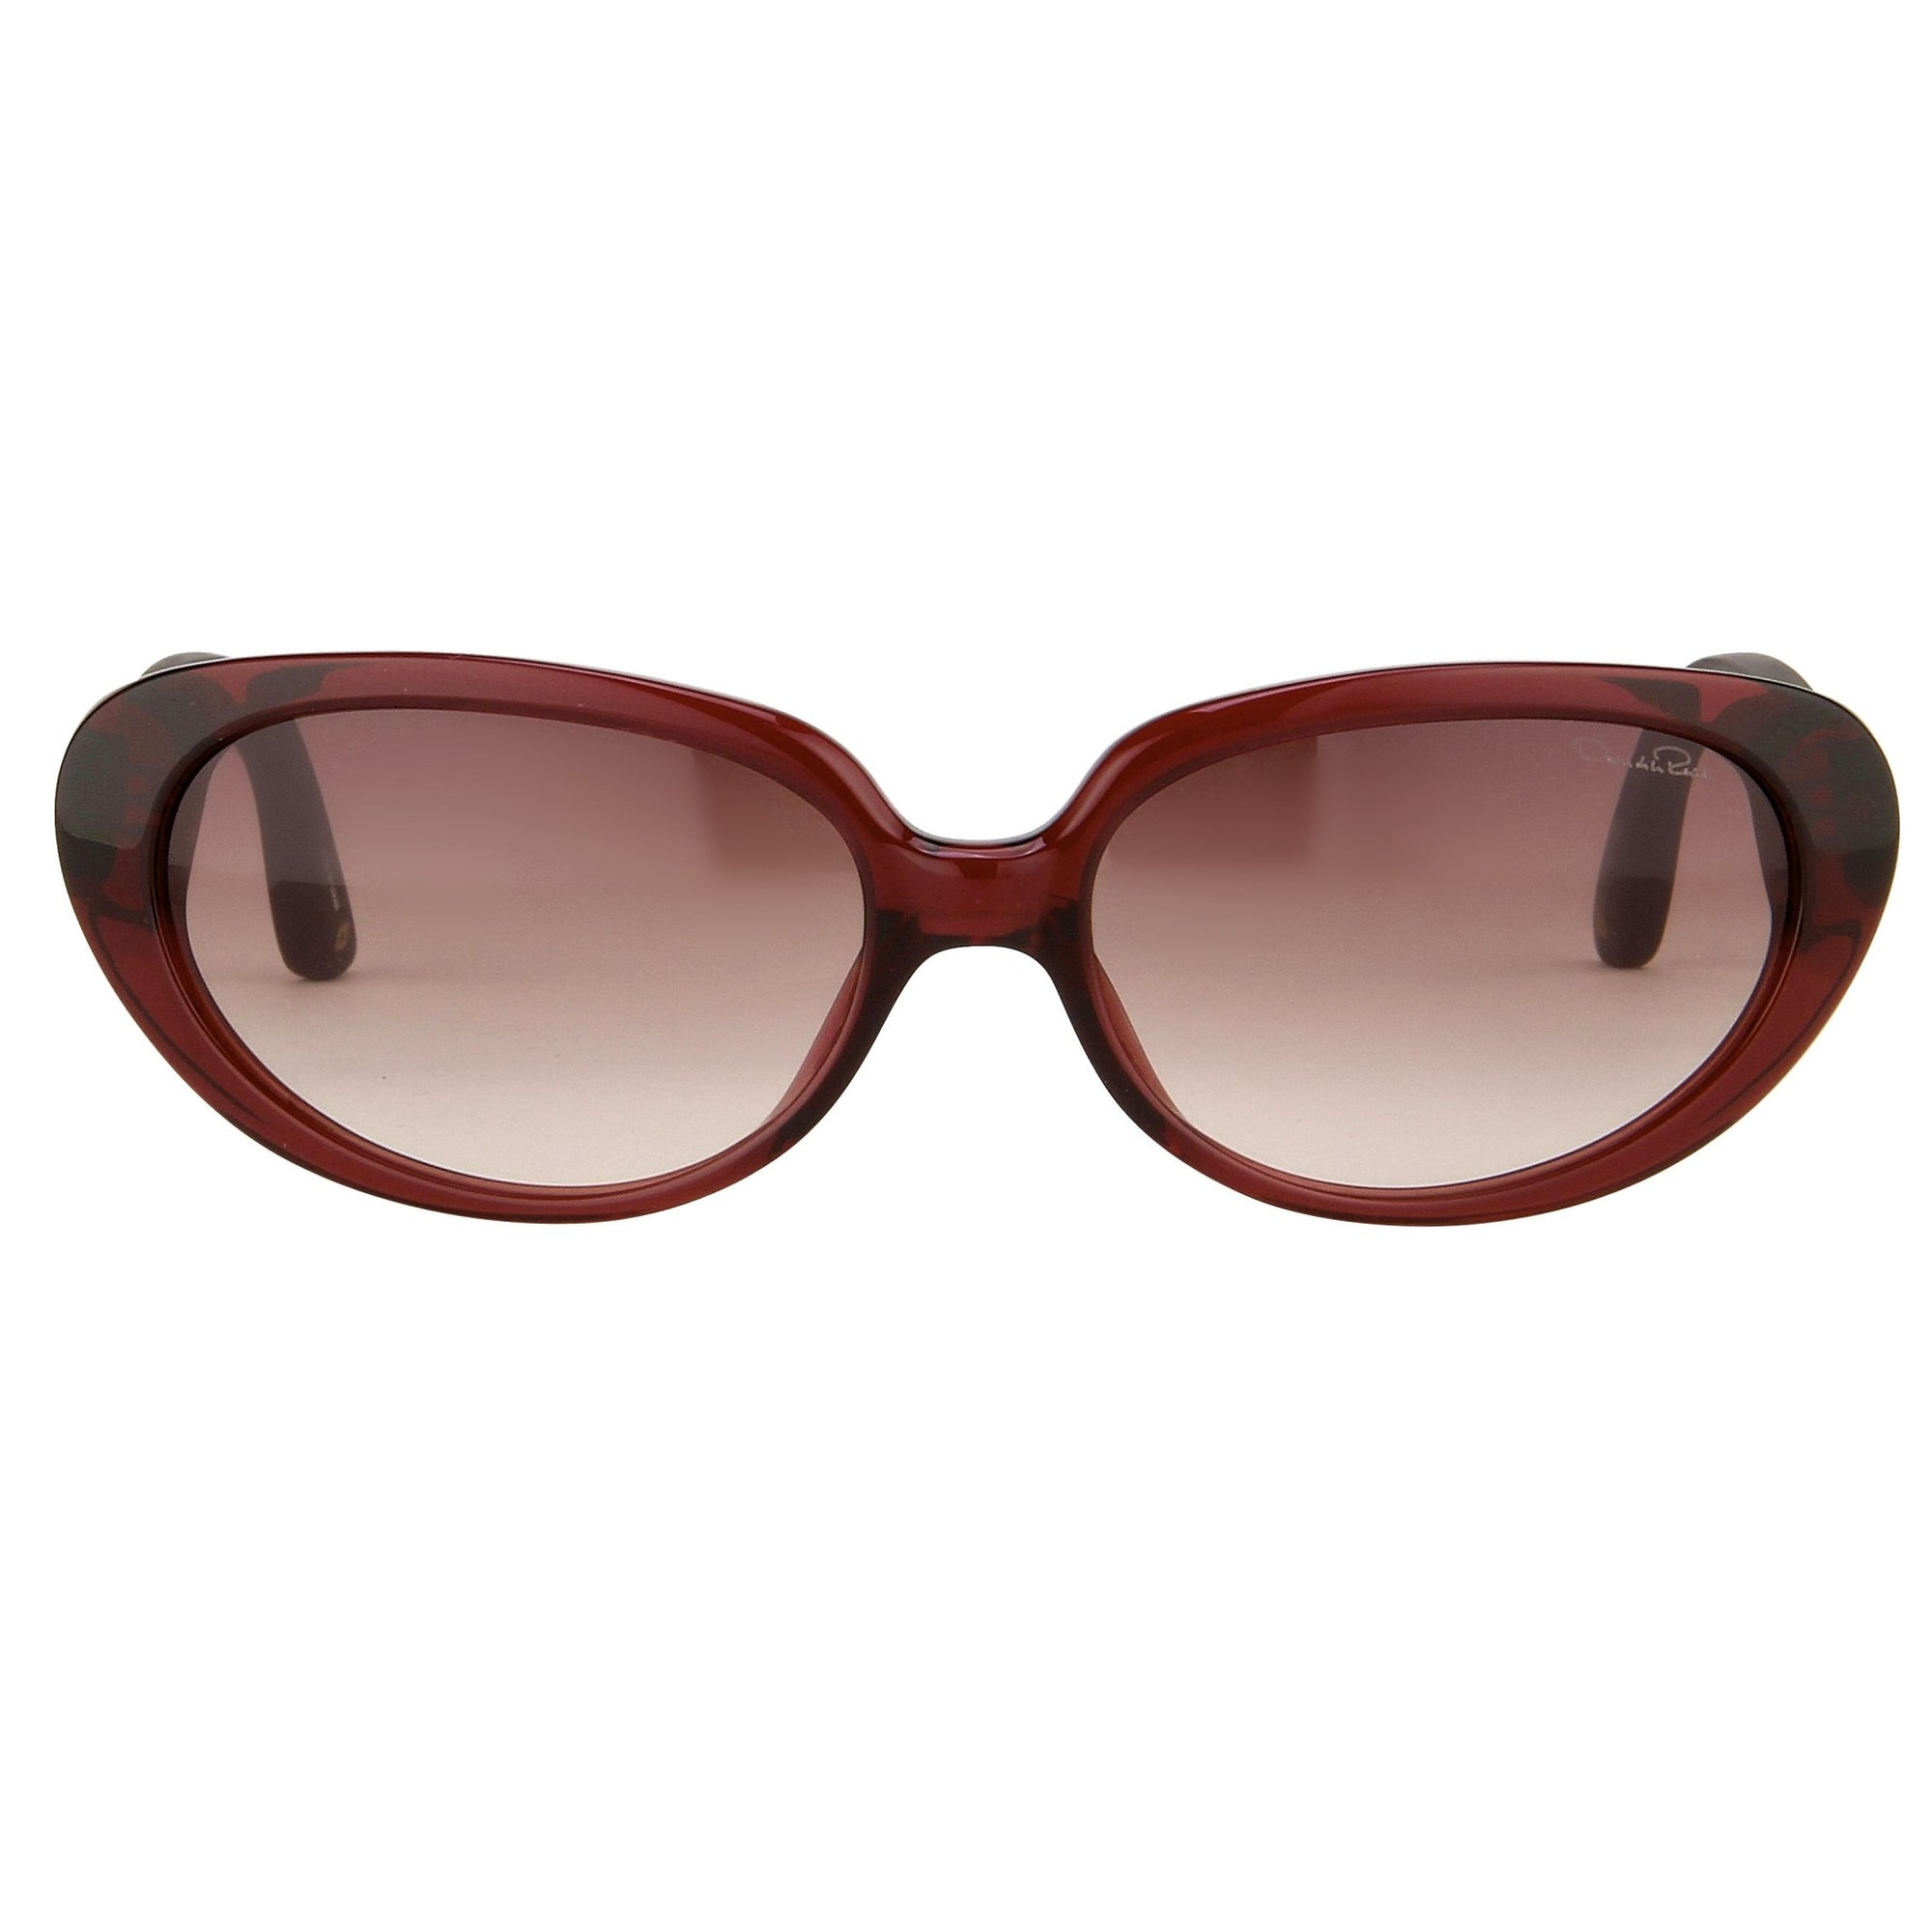 Oscar De La Renta Eyeglasses Cat Eye Ruby and Grey Lenses - ODLR43C9SUN - Watches & Crystals